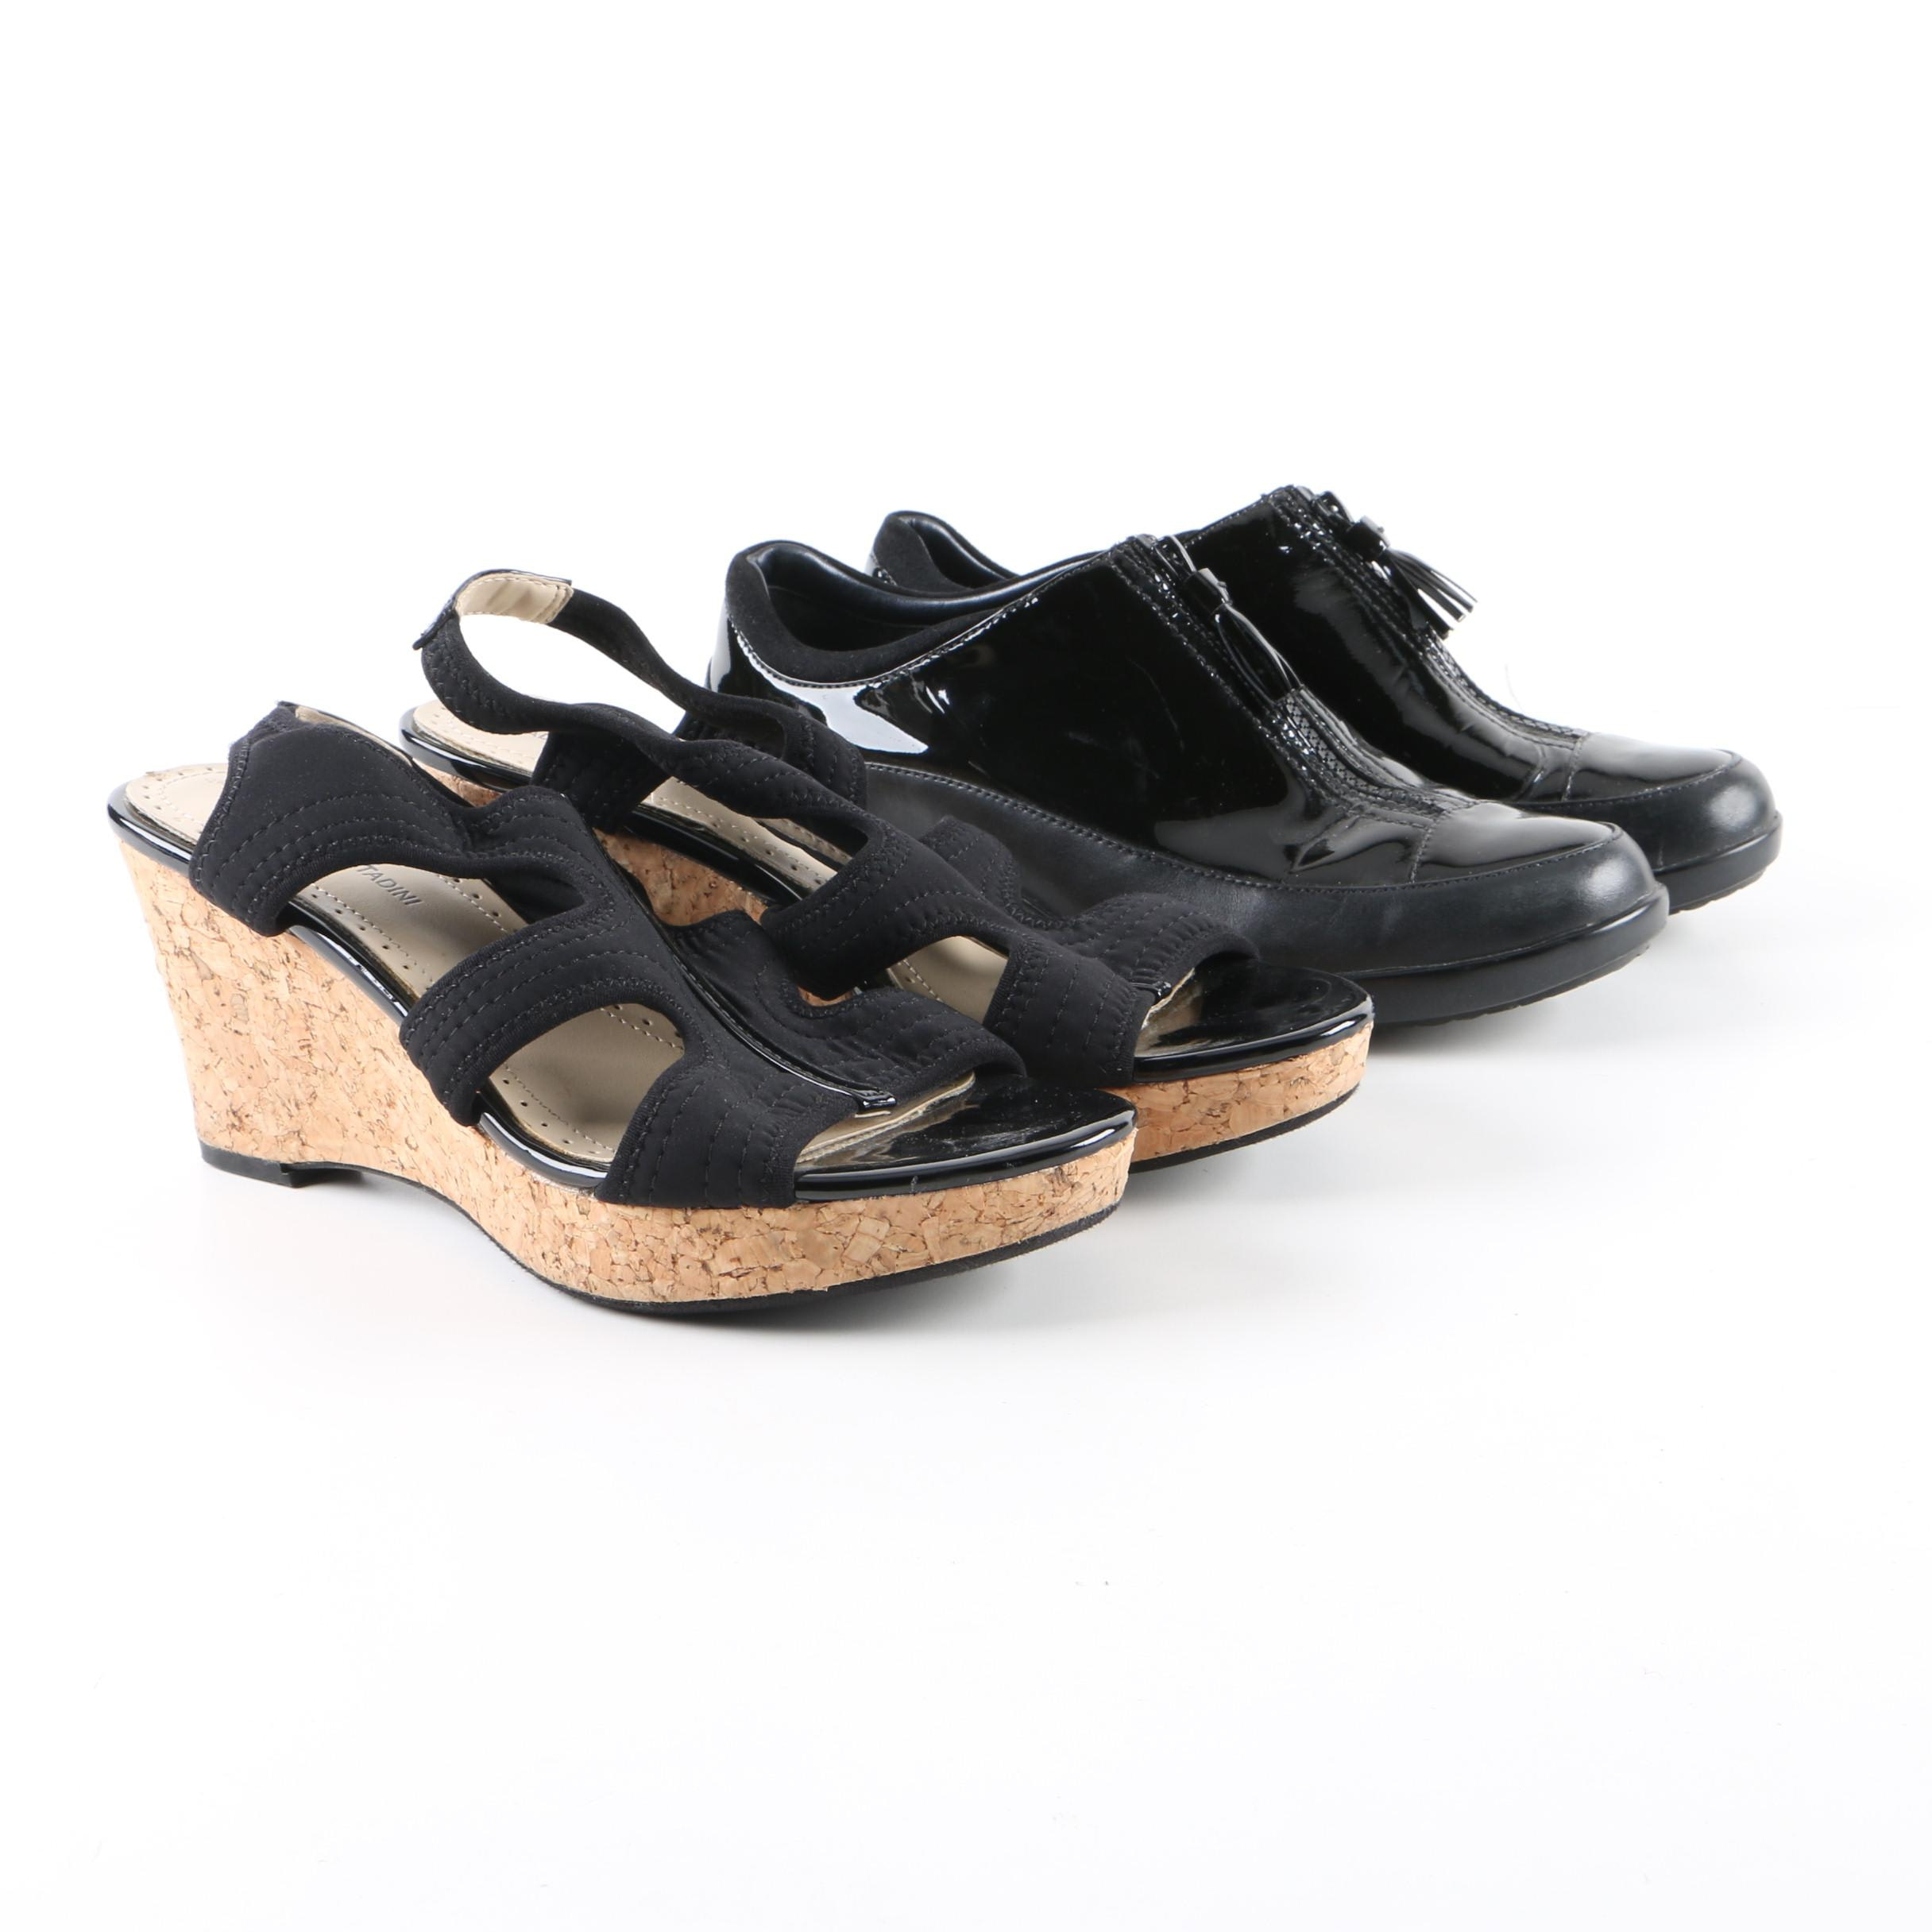 Women's Cole Haan and Adrienne Vittadini Wedges